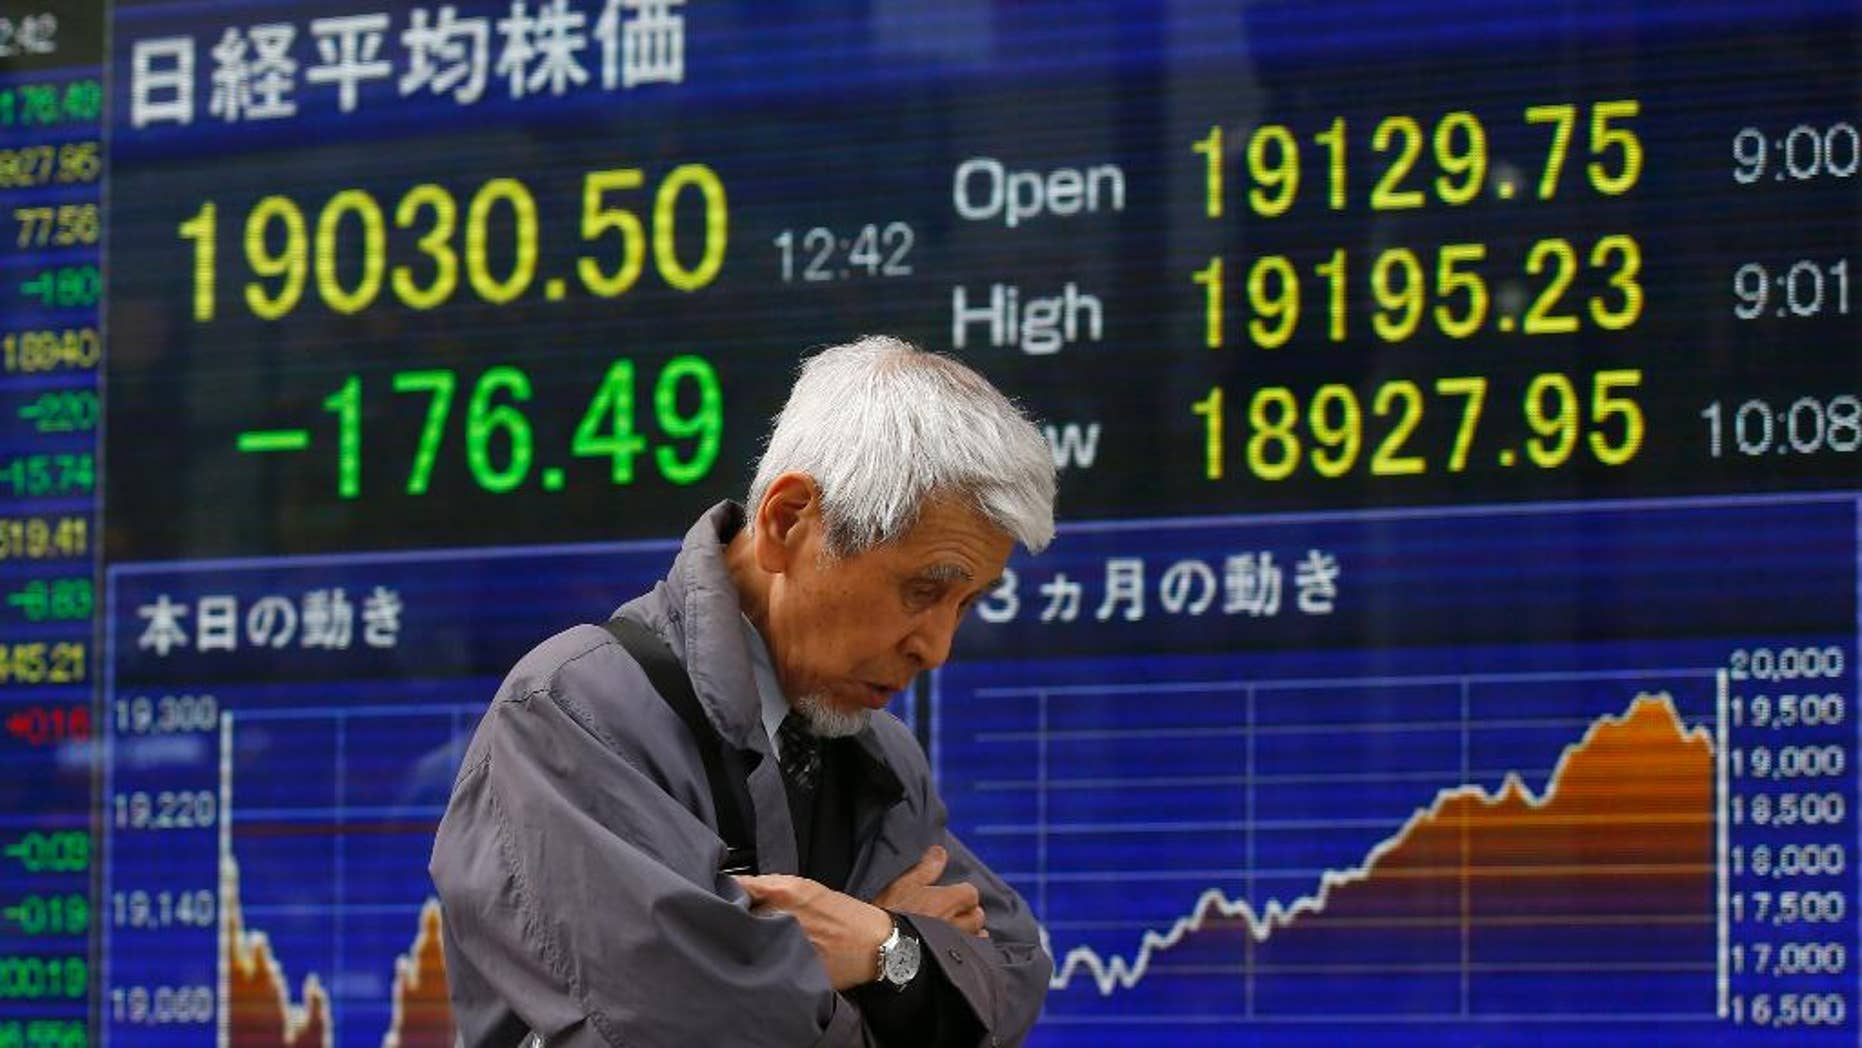 A man walks by an electronic stock indicator of a securities firm in Tokyo, Wednesday, April 1, 2015. Asian stock markets were lackluster Wednesday as China's manufacturing remained weak in February and a Japanese central bank survey showed businesses are wary about the economic outlook. (AP Photo/Shizuo Kambayashi)